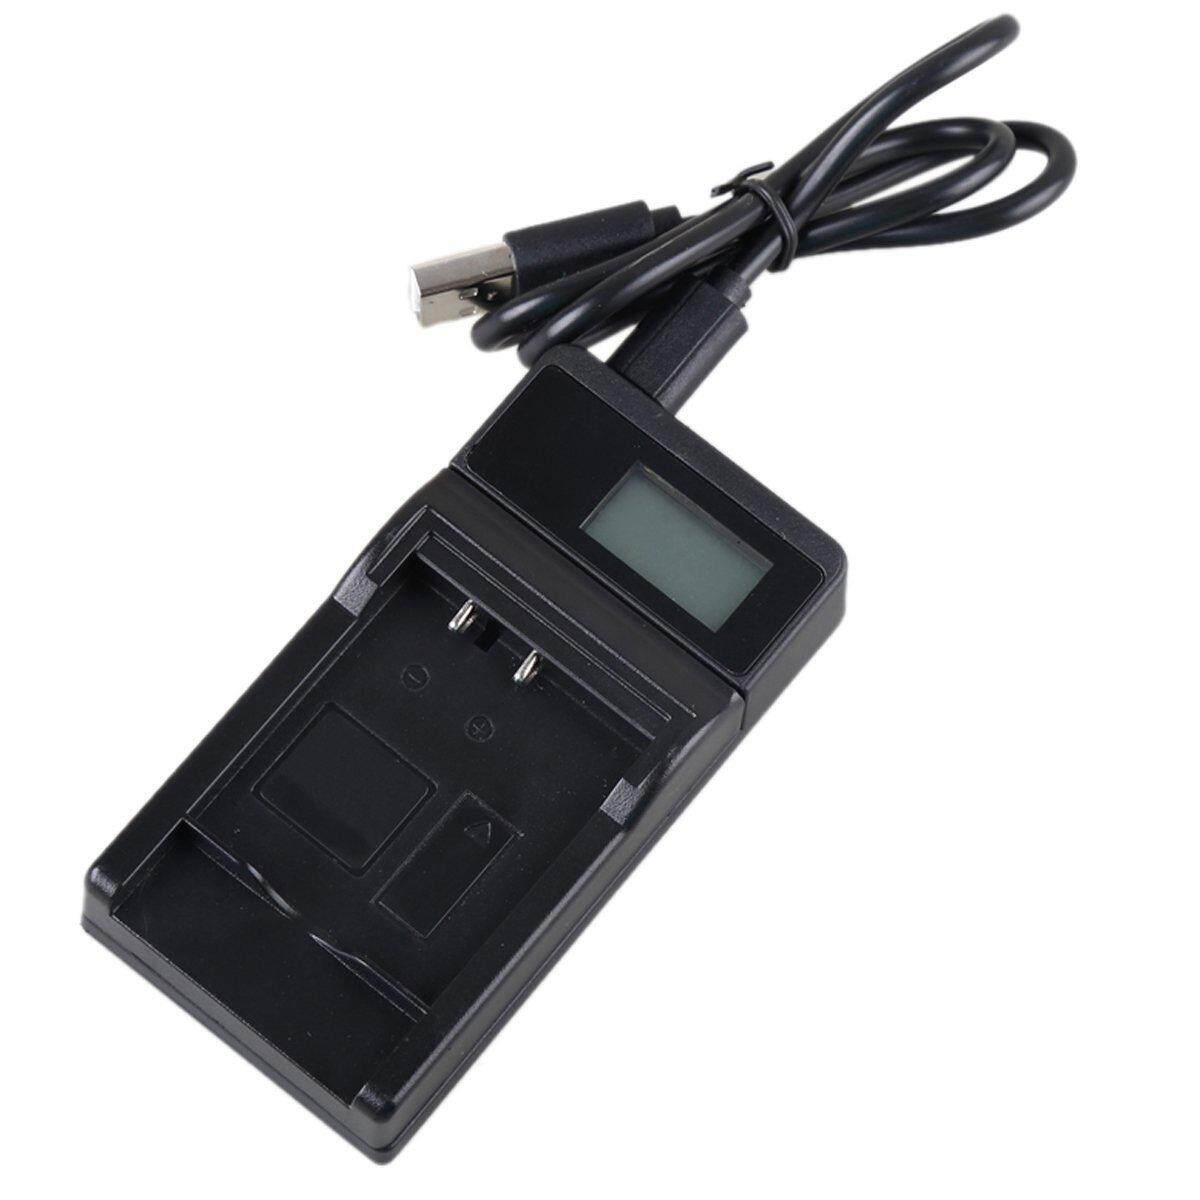 FNP-85 NP85 USB LCD Display Digital Camera Charger For Camera FinePix S1 SL1000 SL305 - intl